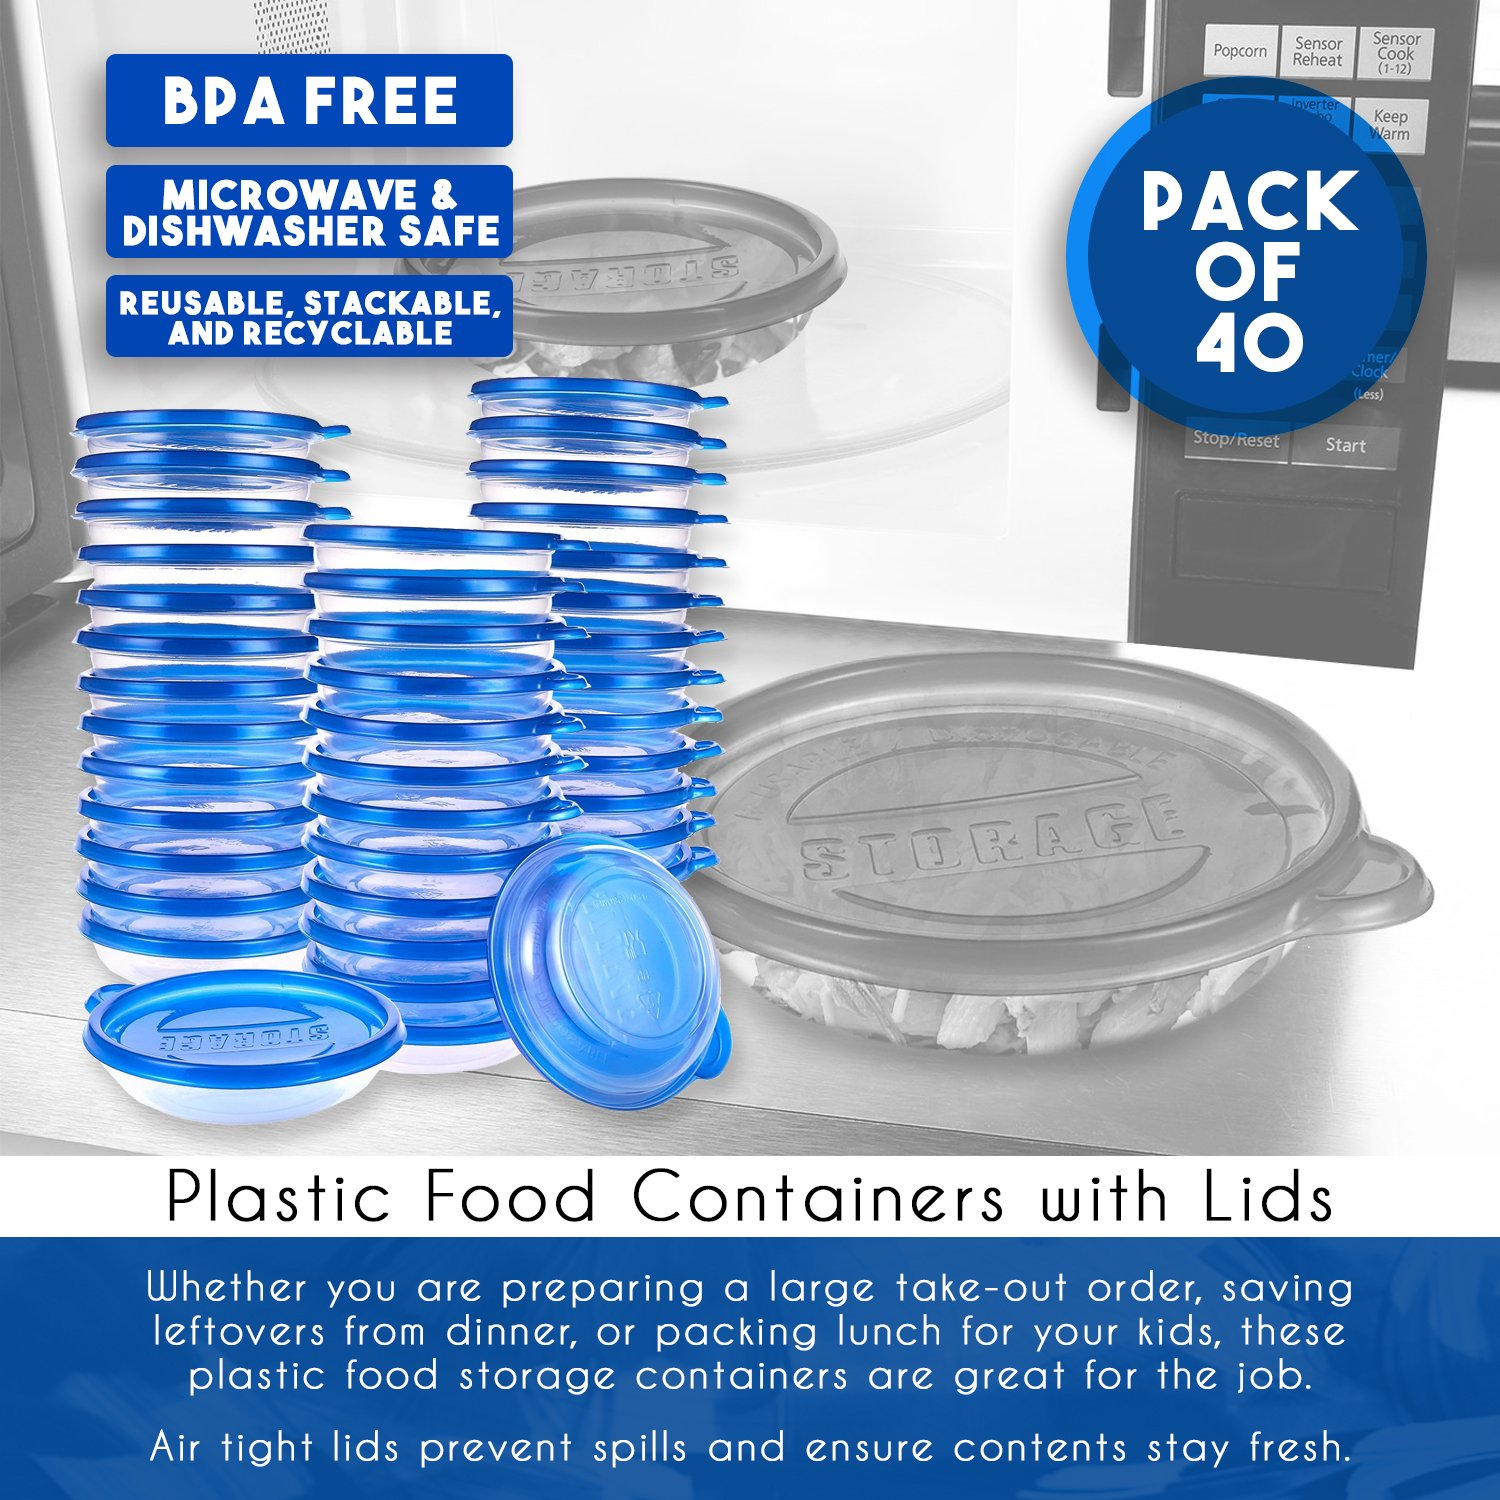 40-Pack Plastic Food Containers with Lids - Small Round Food Storage Containers, Deli Take Out Restaurant Containers, Microwave, Freezer, Dishwasher Safe, Fits 9.5 Fluid Ounces, 9.5 fl oz by Juvale (Image #4)